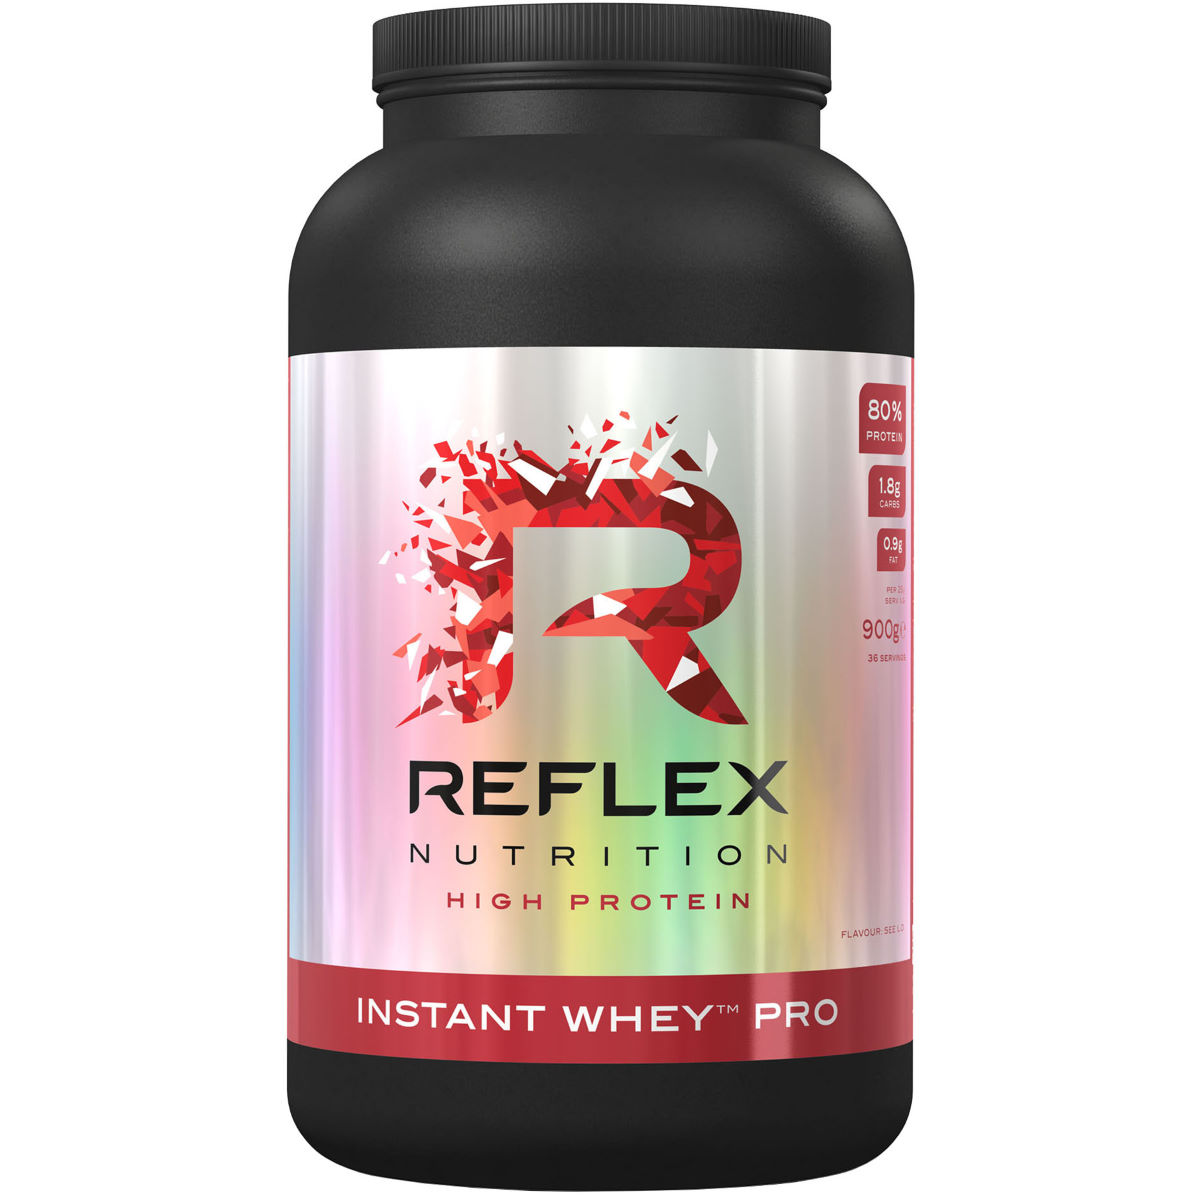 Reflex Reflex Instant Whey Pro (900g)   Powdered Drinks